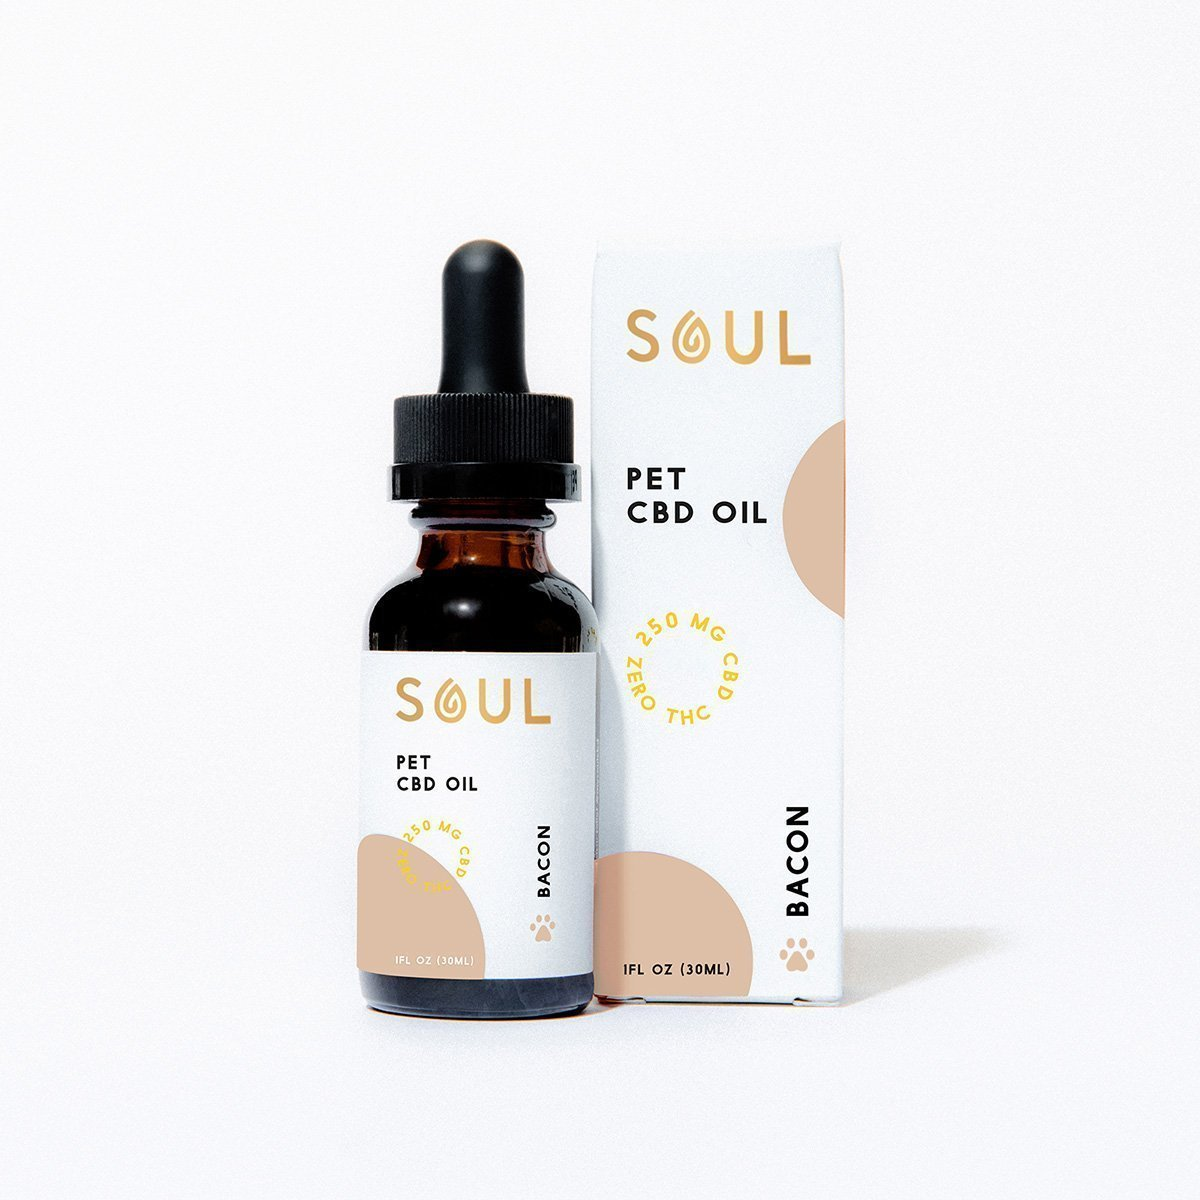 Soul CBD Pet CBD oil